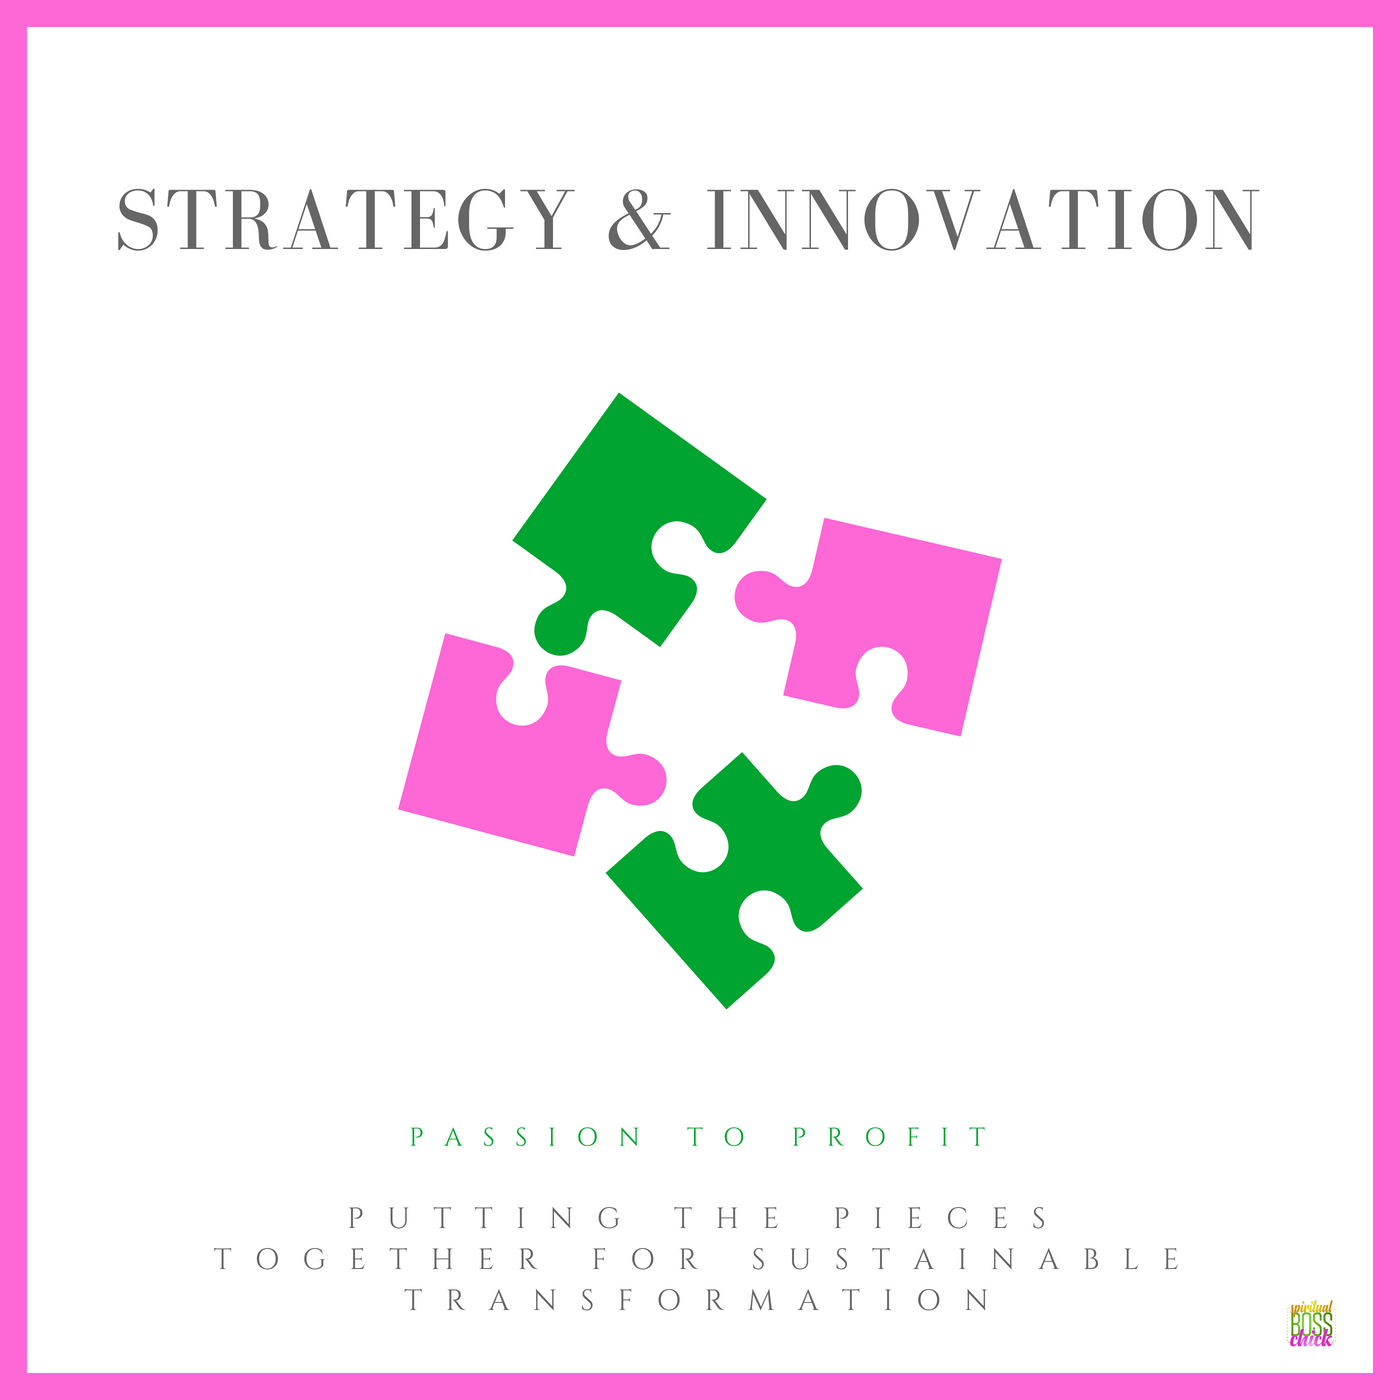 strategy & innovation.jpg